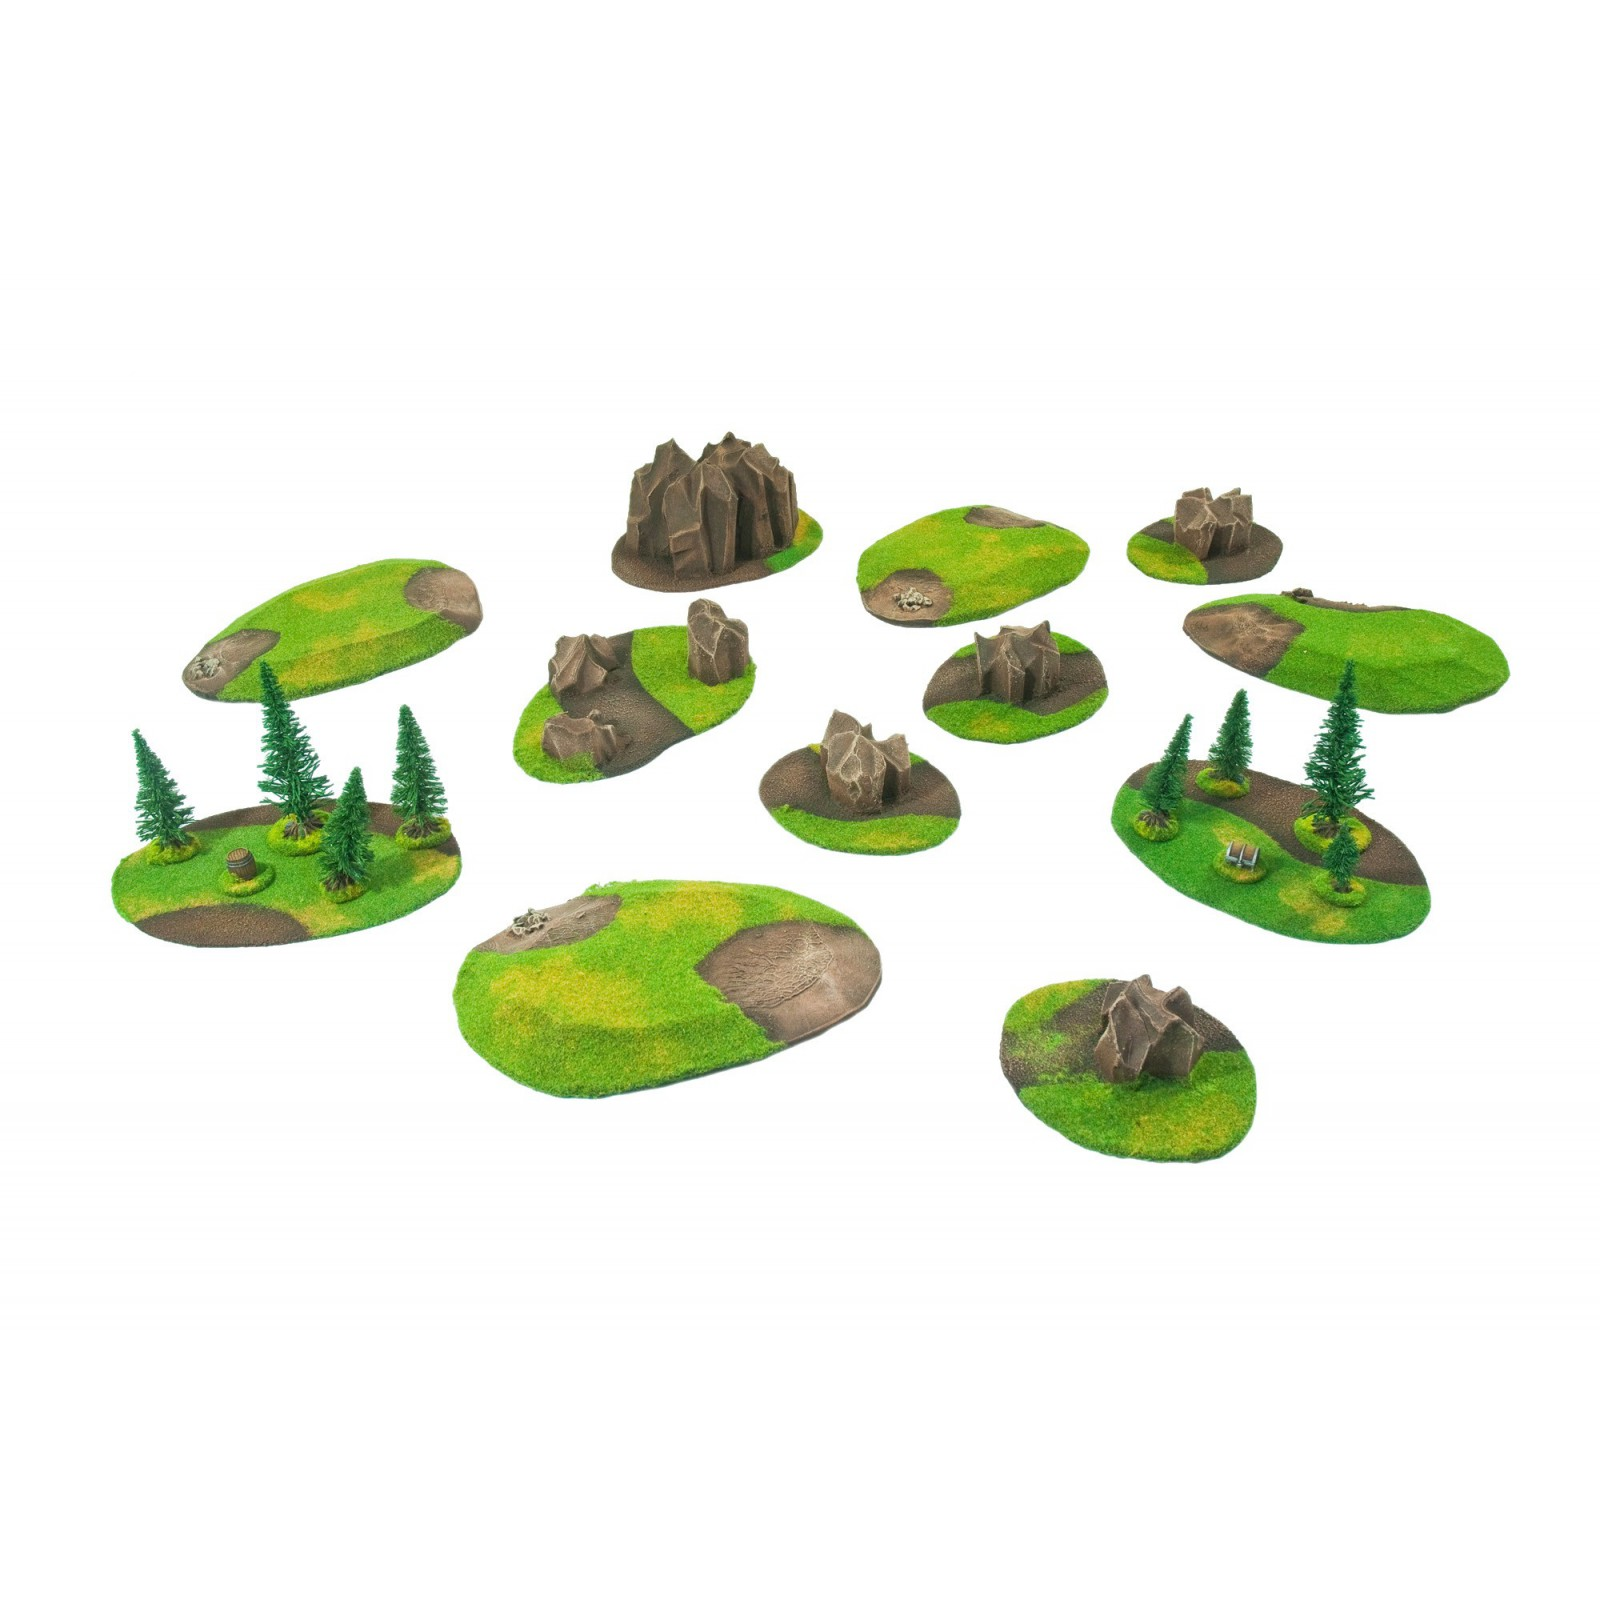 universal-basic-terrain-with-forest-set